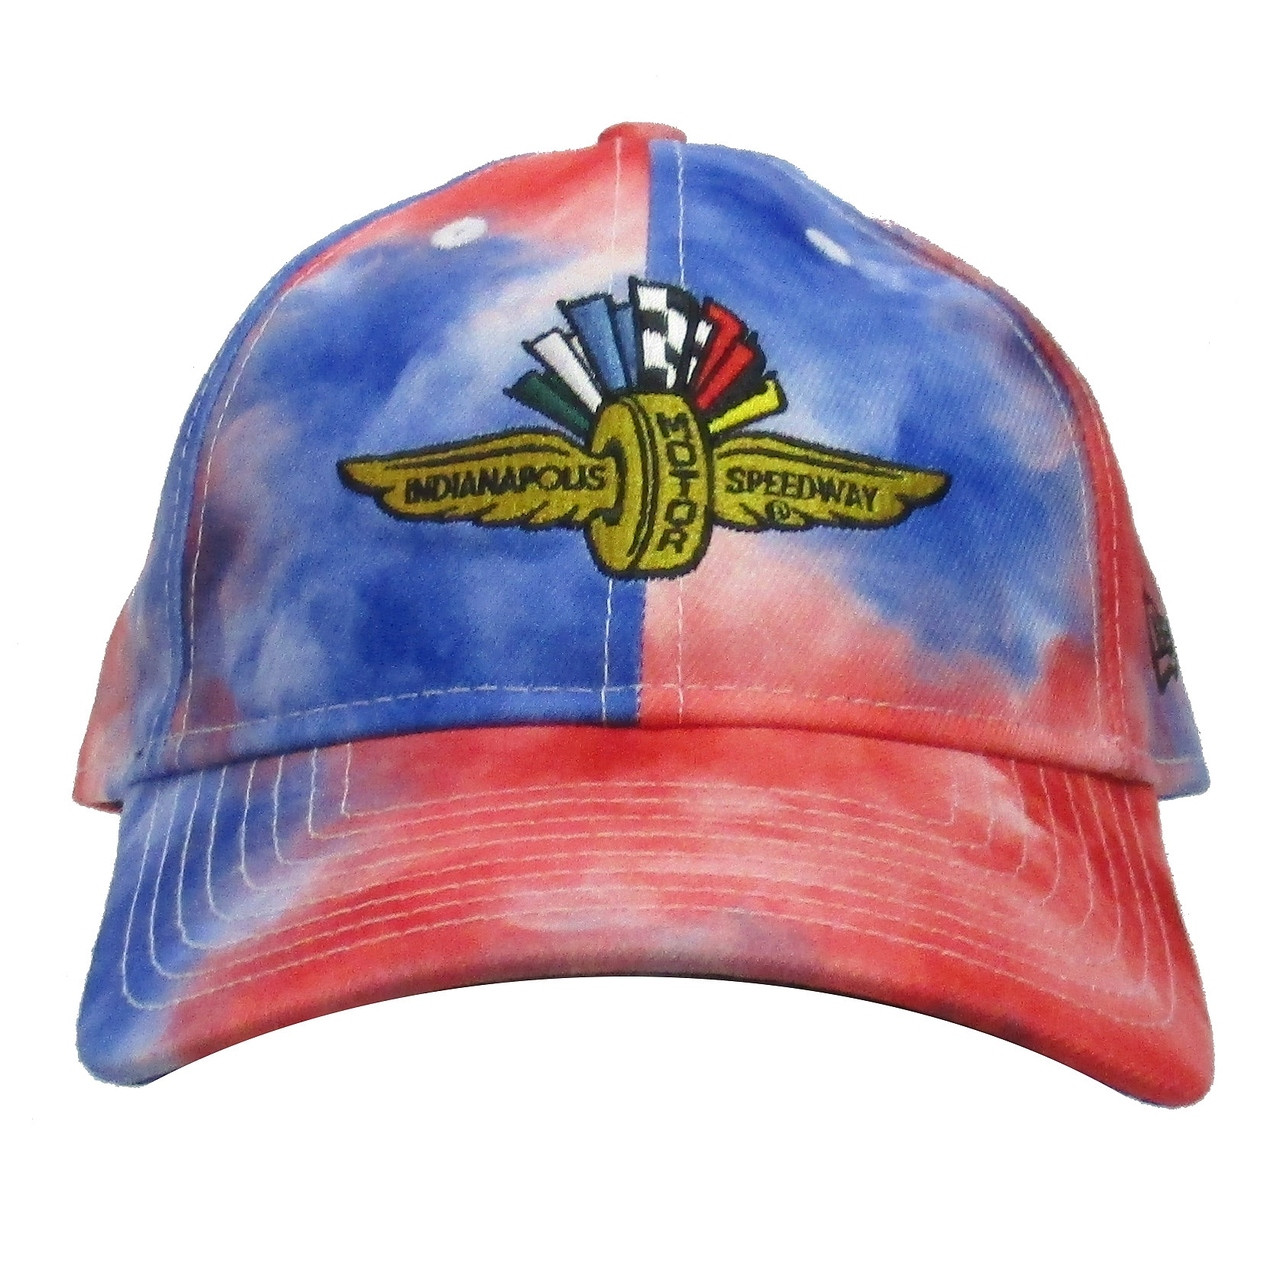 ce7d8403169665 Wing Wheel and Flag Tie Dye New Era 9TWENTY Cap - Indianapolis Motor  Speedway/INDYCAR